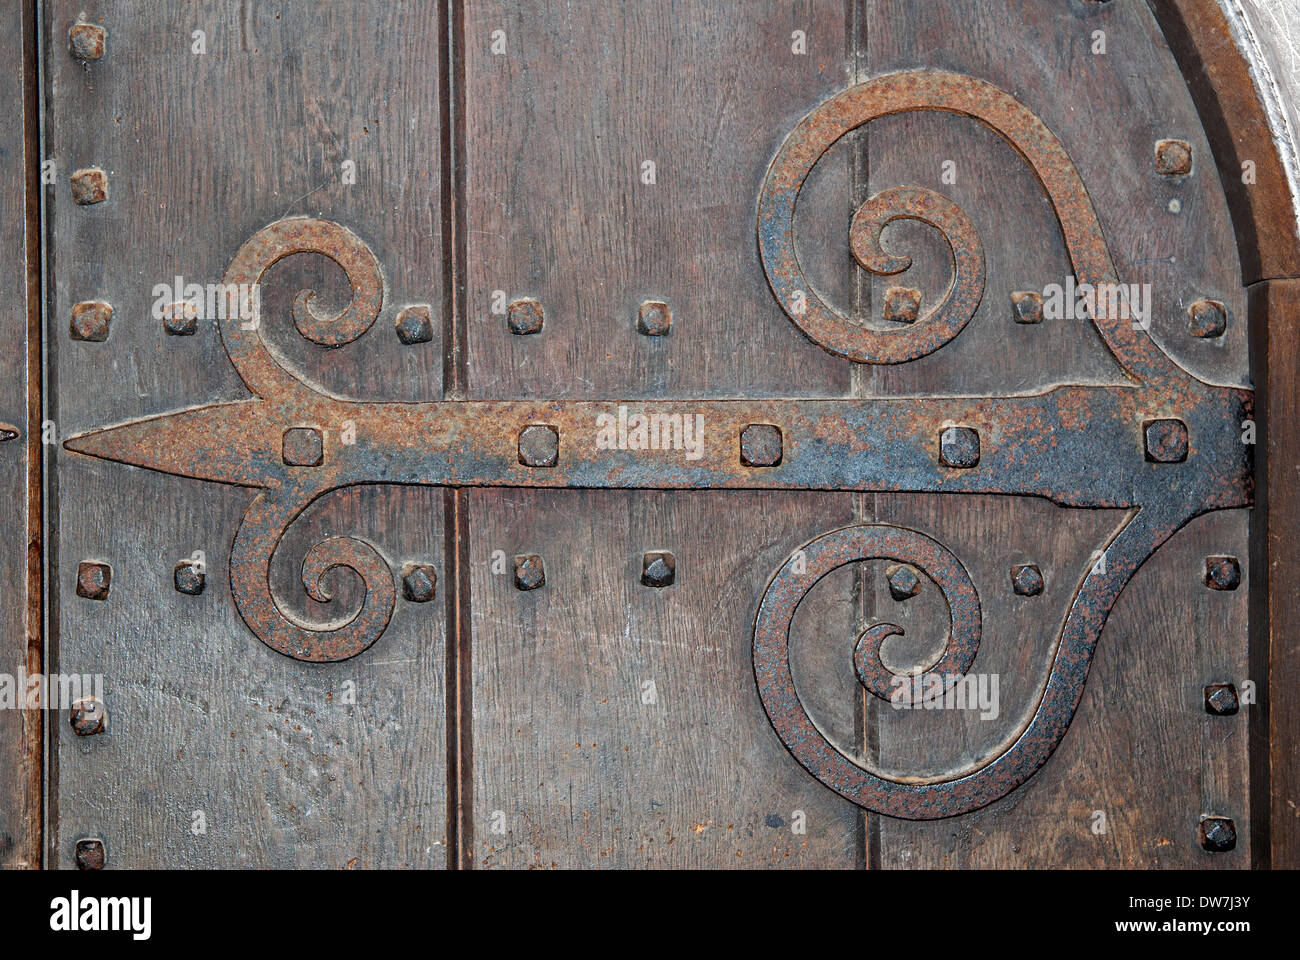 a medieval style door hinge - Stock Image